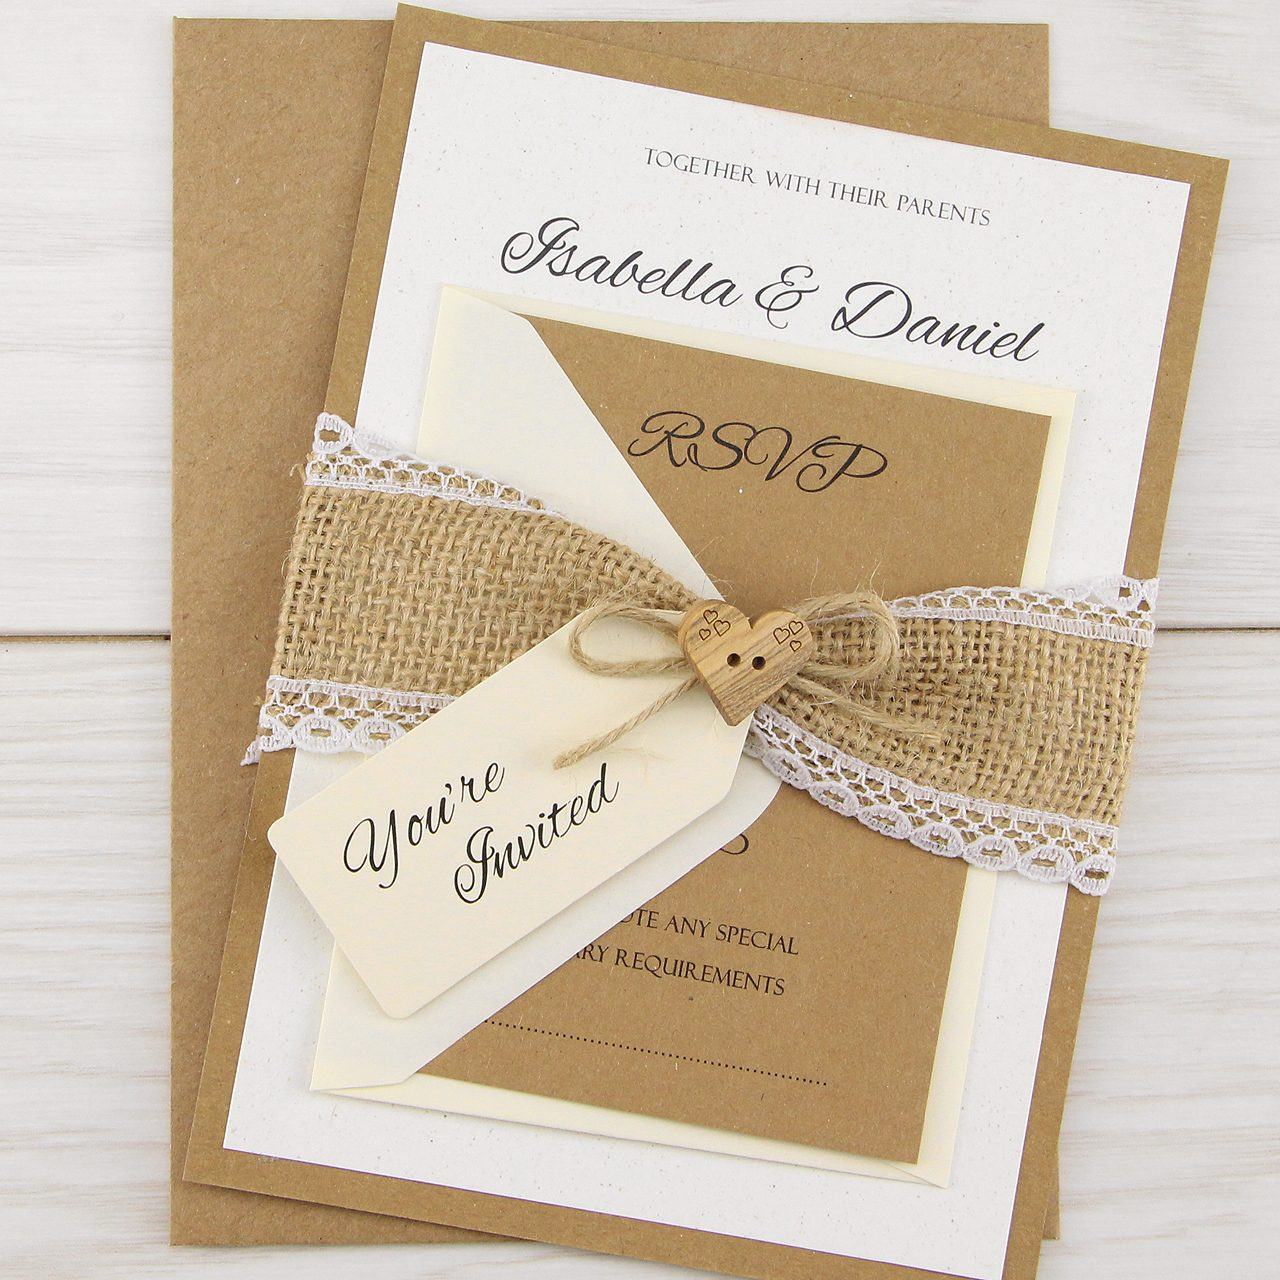 Sample Wedding Invitation Card: Dakota Parcel Wedding Invitation